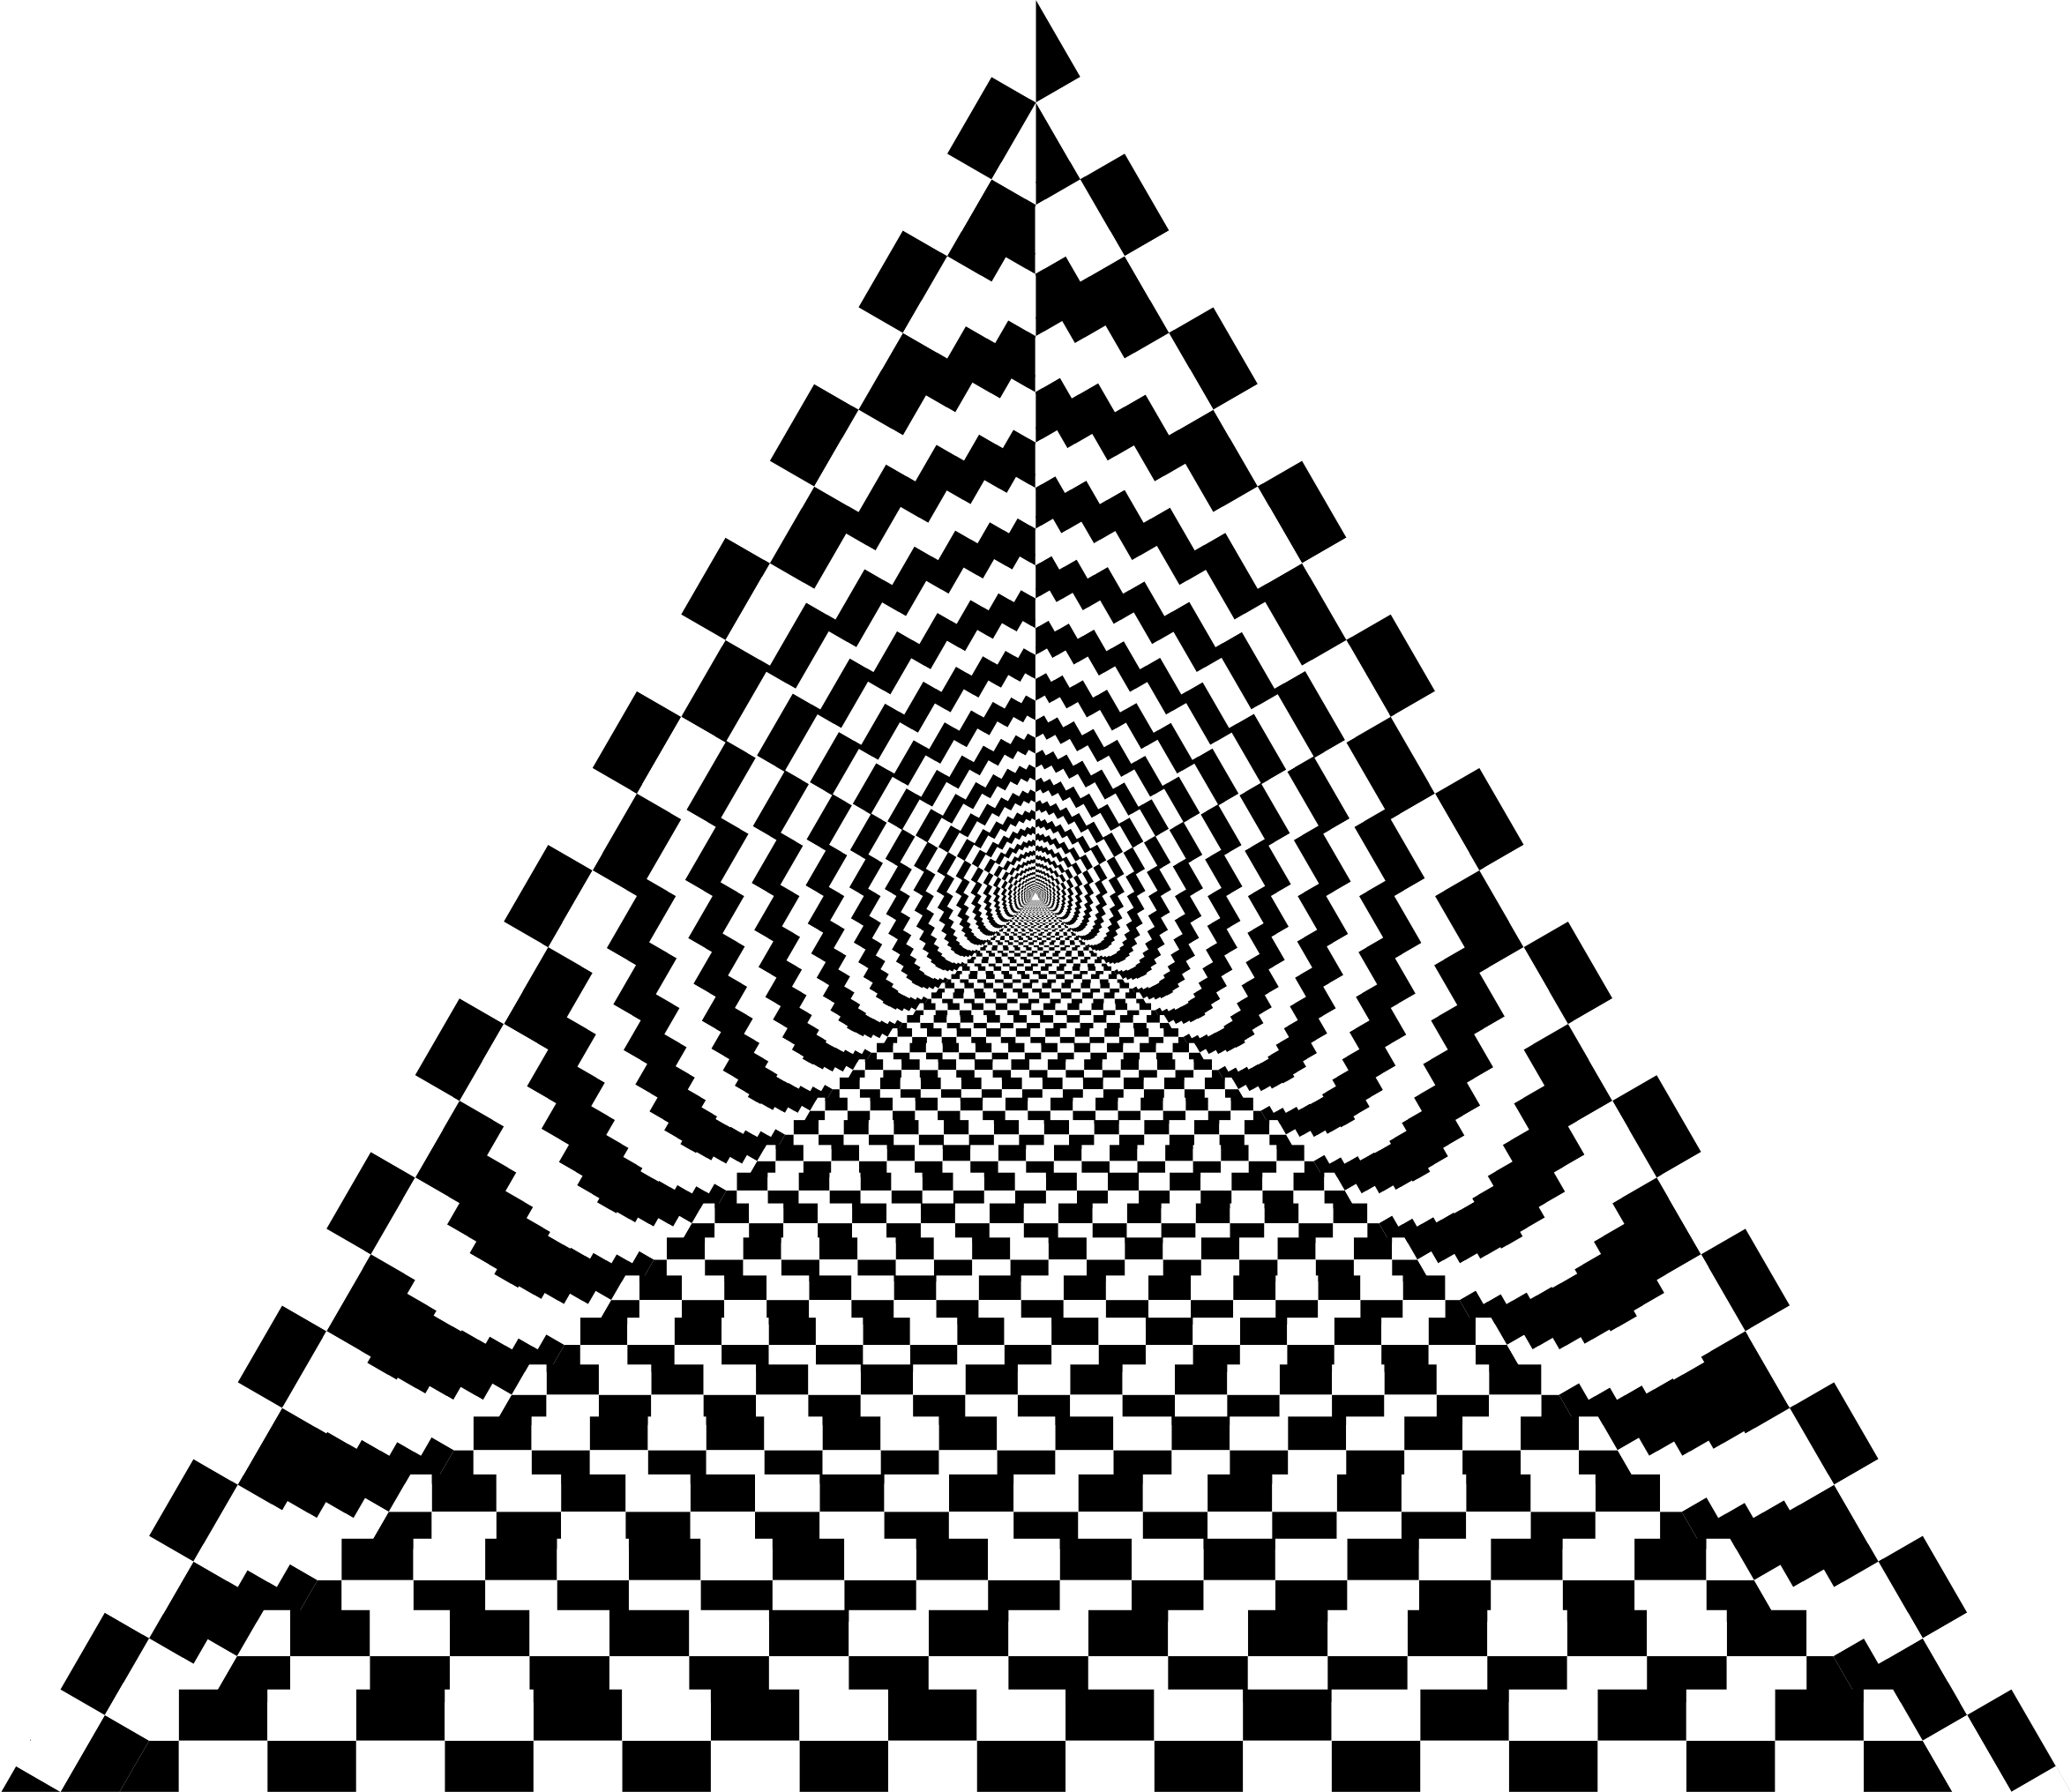 Triangular clipart pyramid. Checkerboard big image png